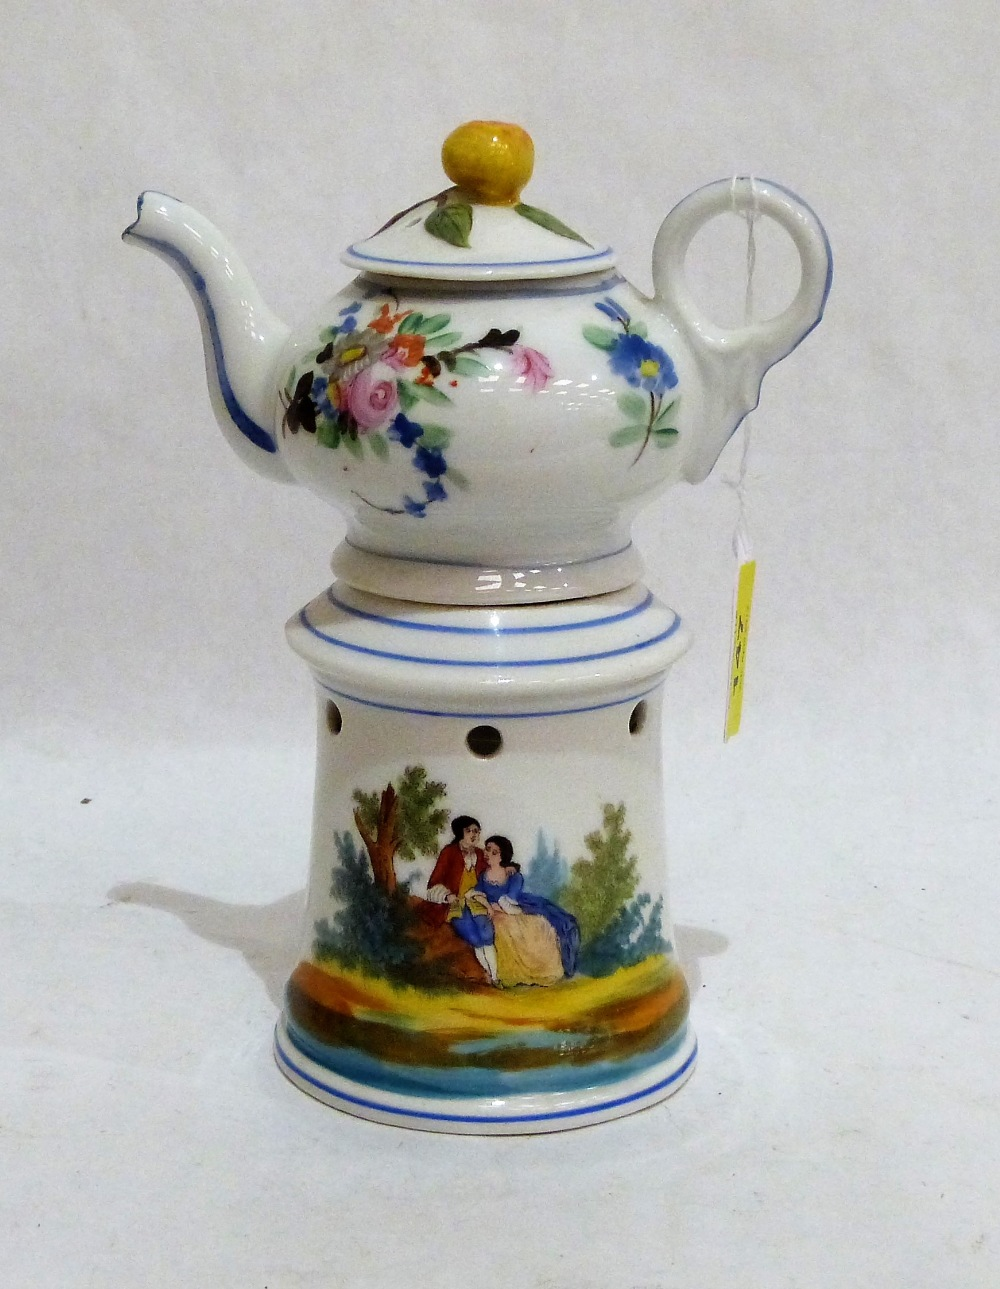 Lot 147 - A 19th century French veilleuse teapot on burner stand, painted in colours with lovers in a garden